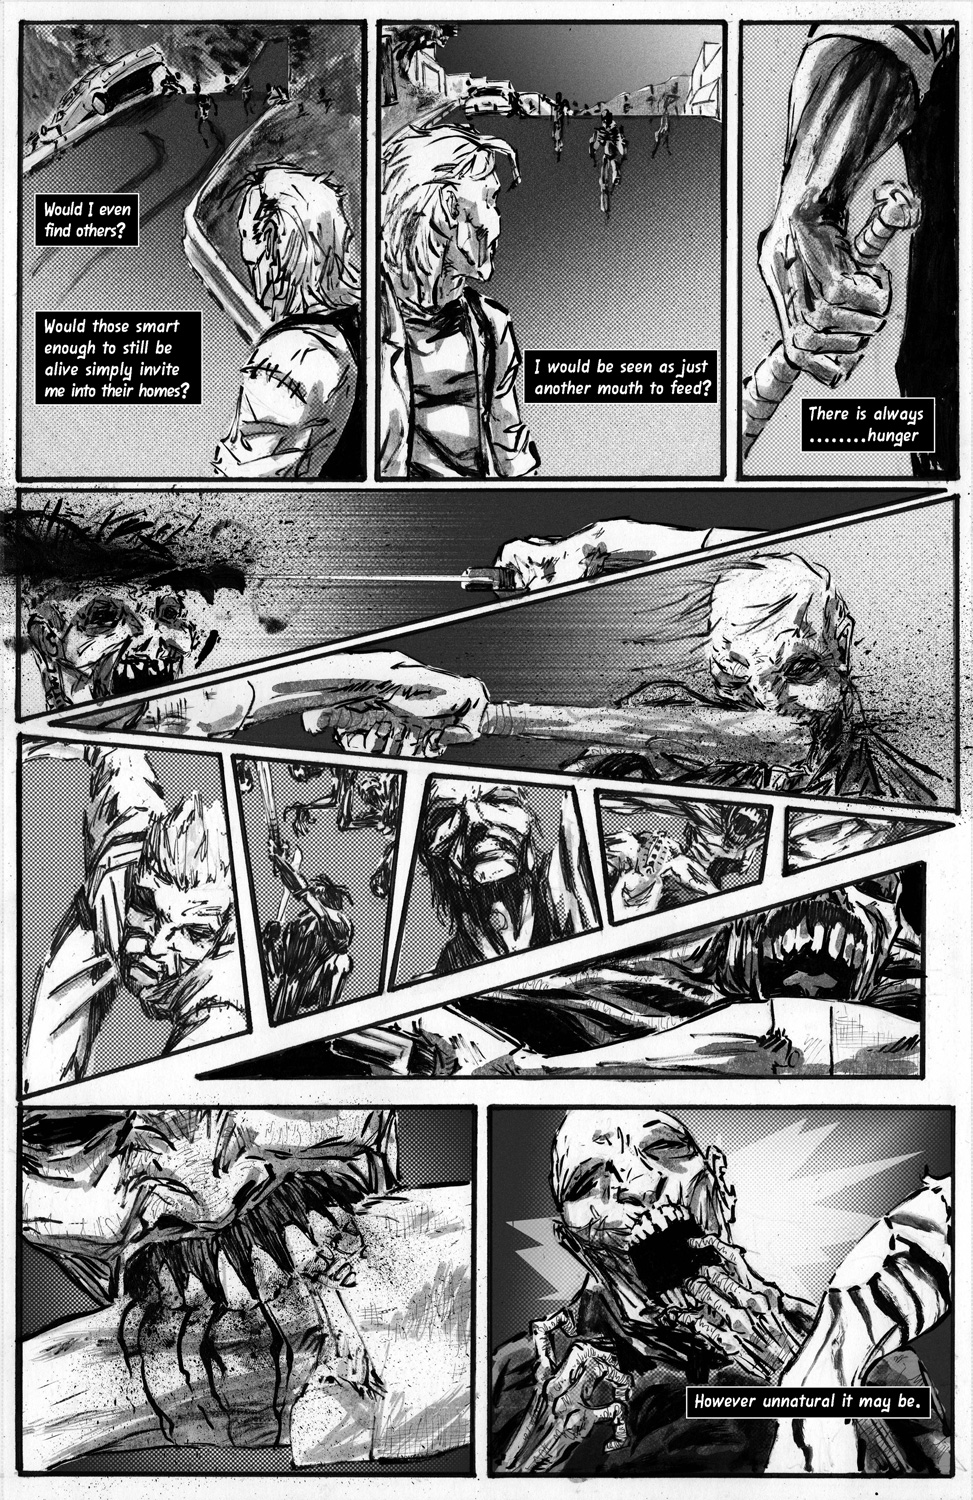 Dawn Page 5